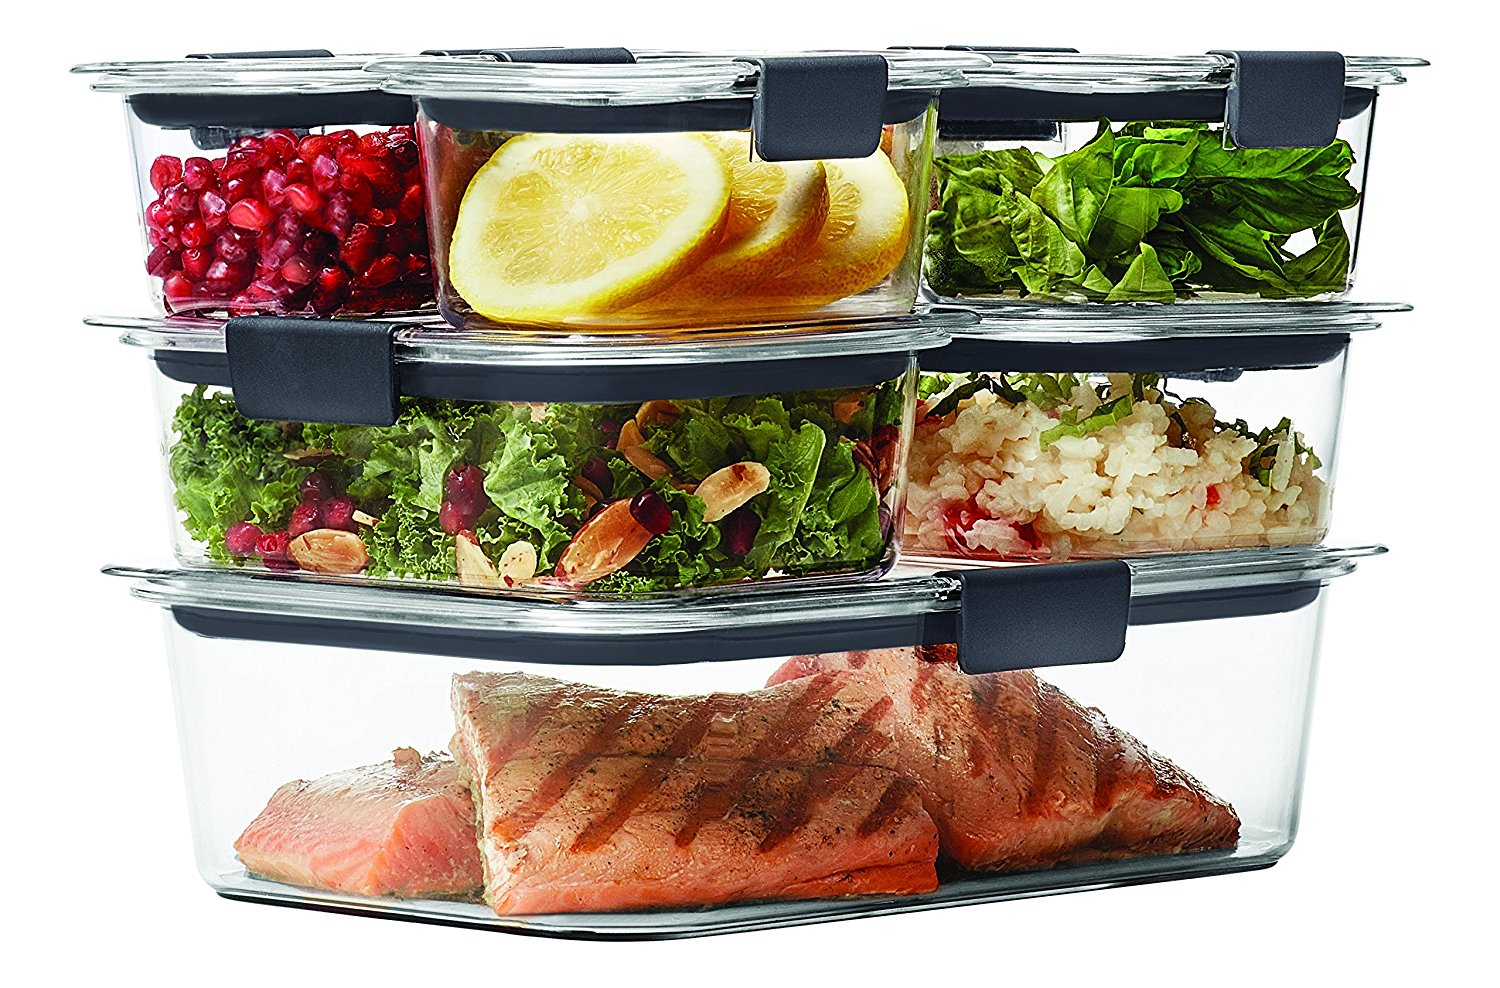 Rubbermaid Brilliance Food Storage Container Best Offer